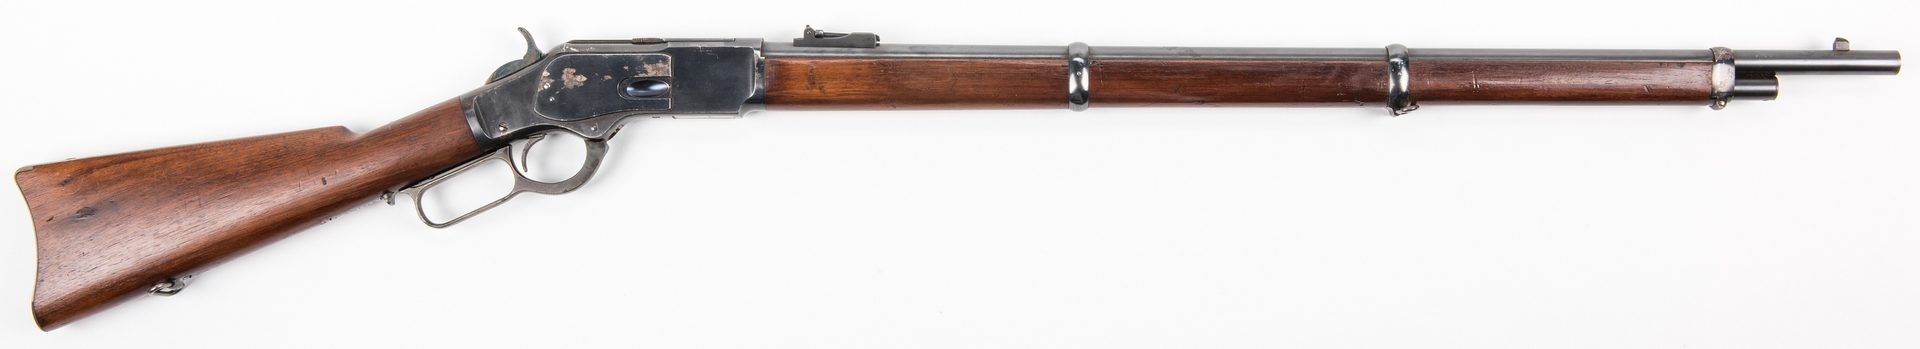 Lot 825: Winchester Model 1873, 44-40 Lever Action Rifle